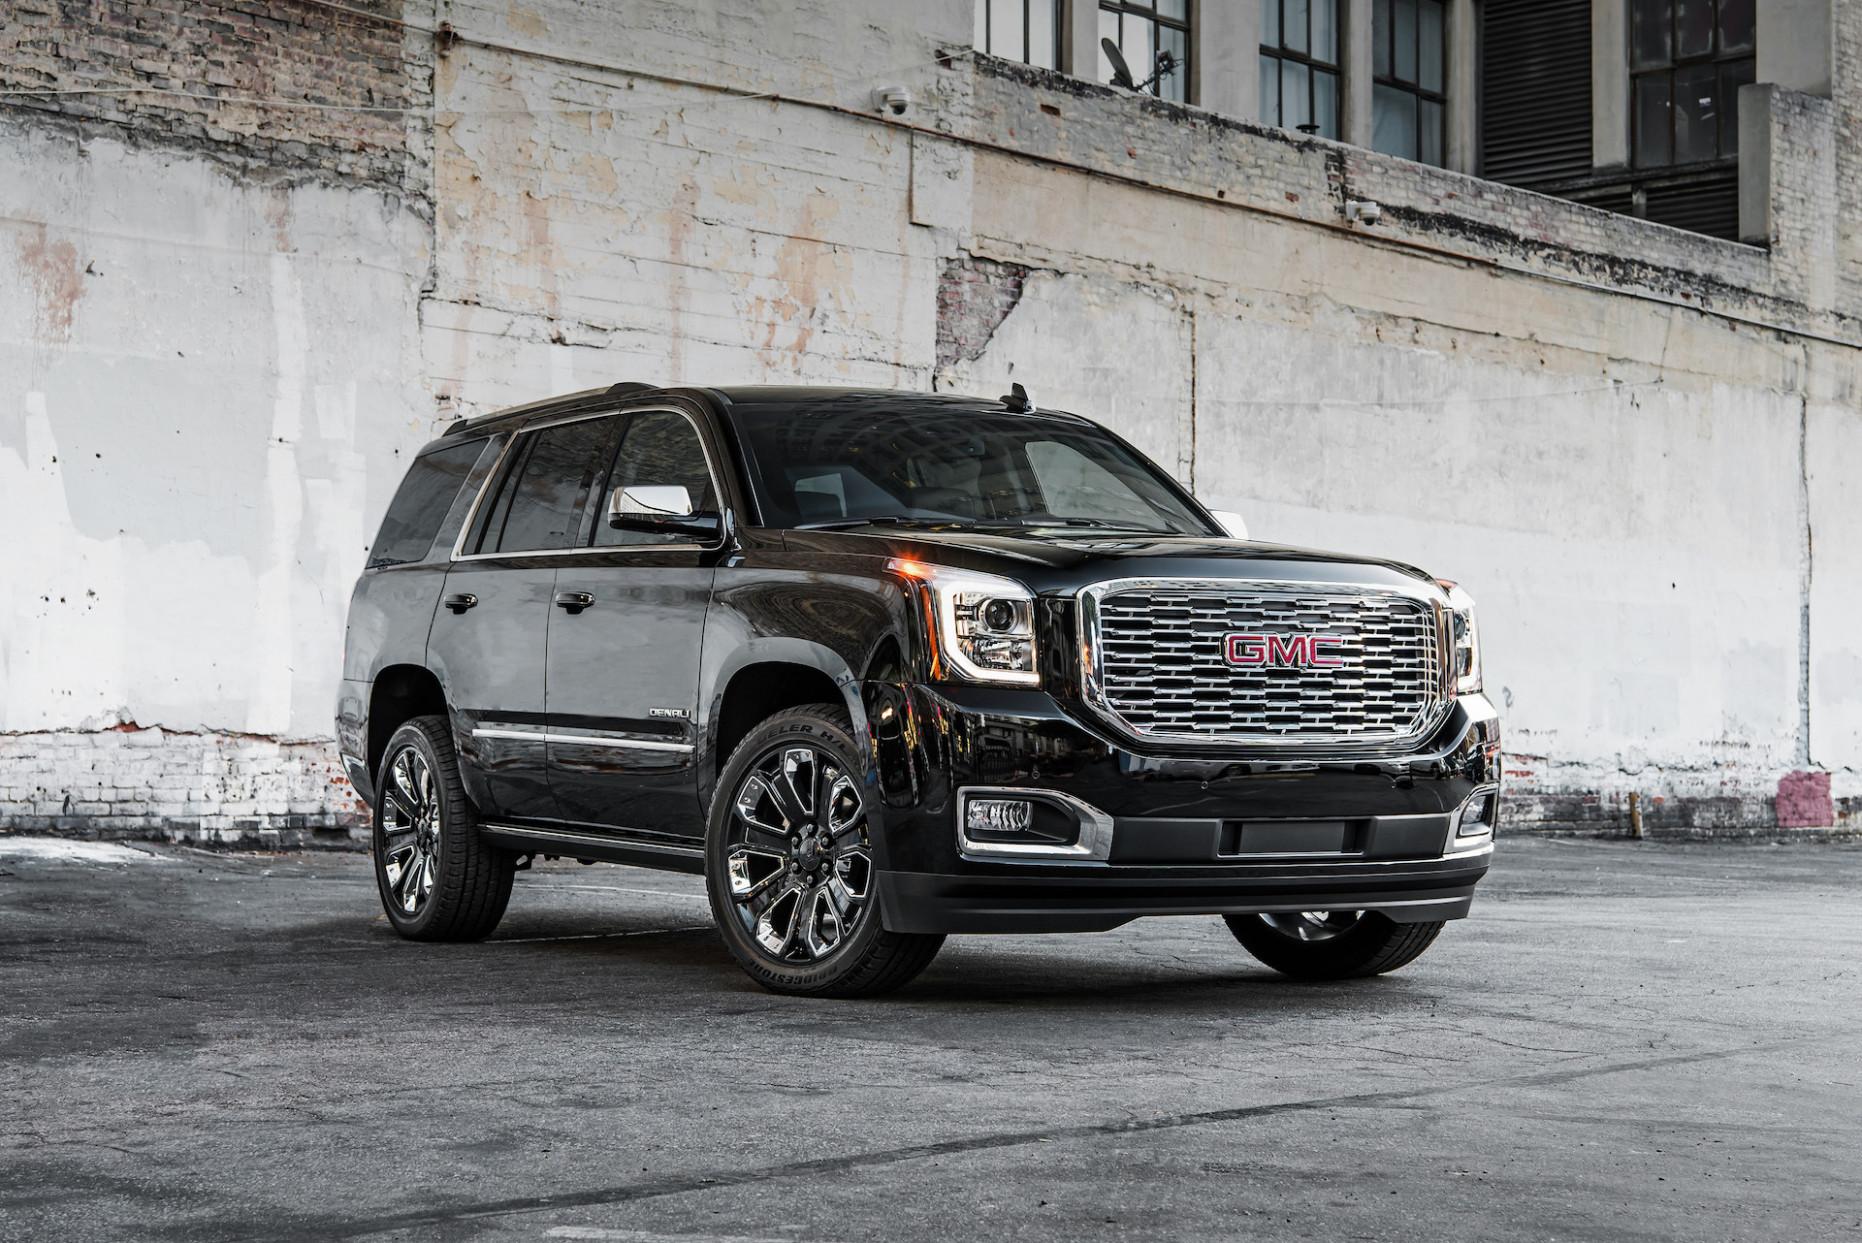 11 GMC Yukon Review, Ratings, Specs, Prices, and Photos - The ...